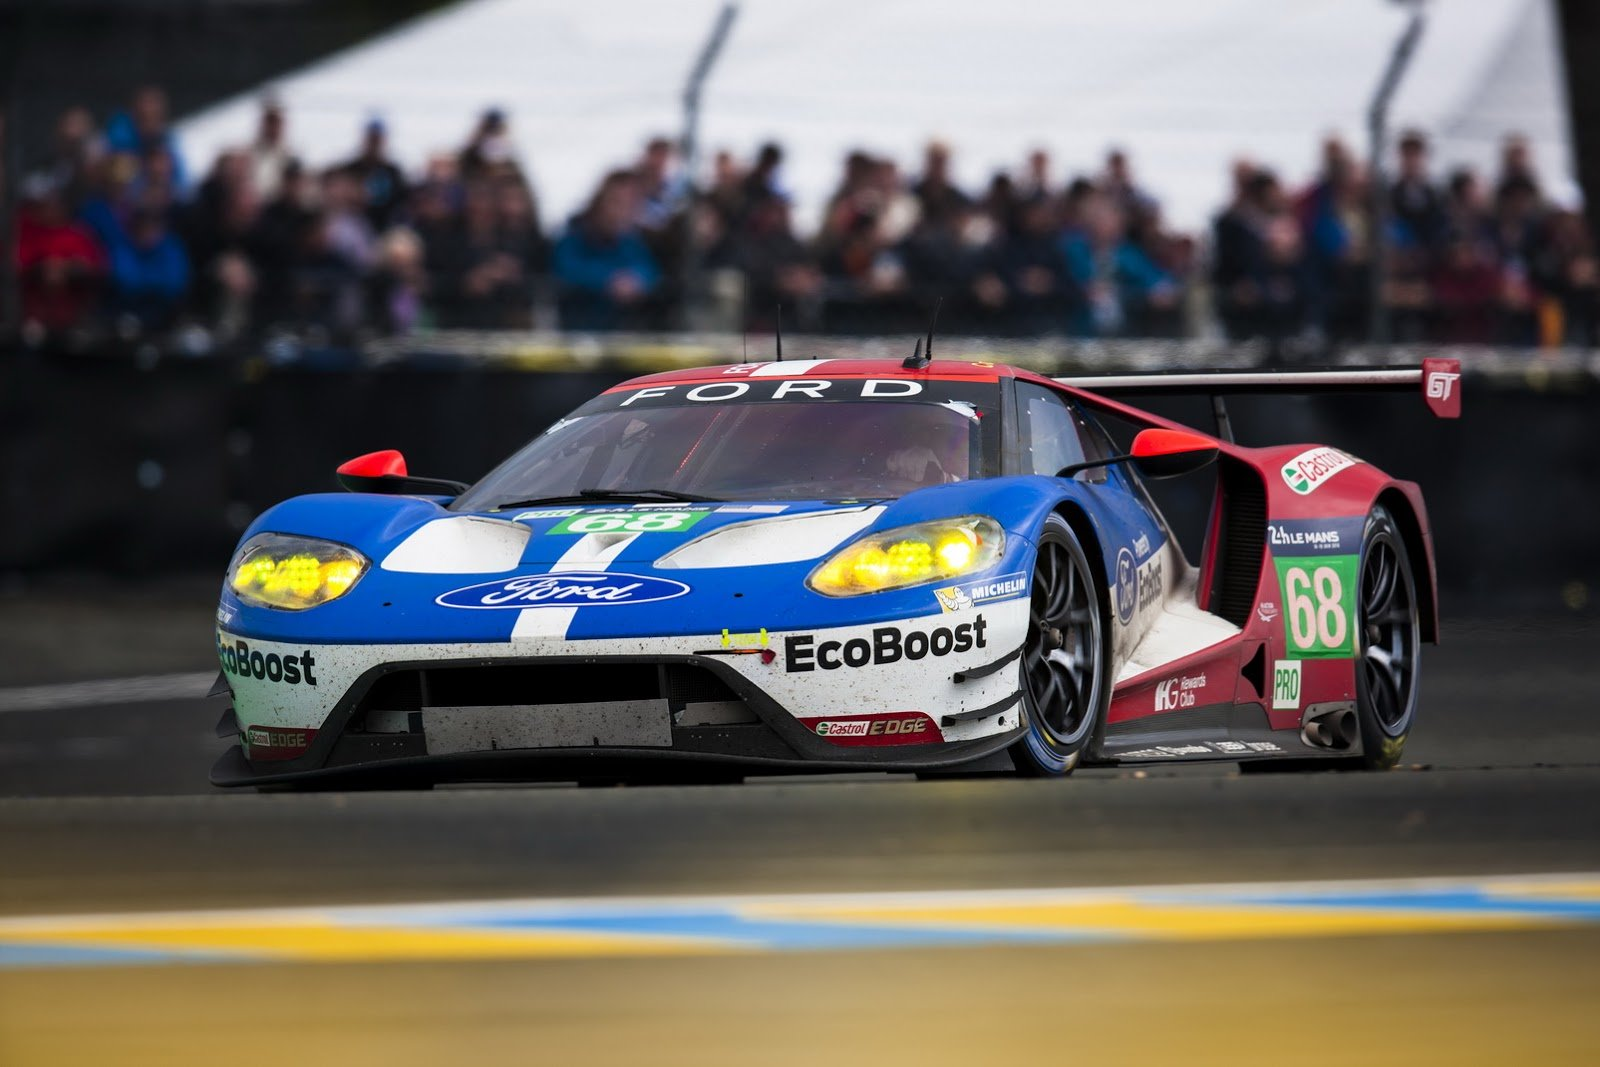 ee945c14-ford-gt-racing-3